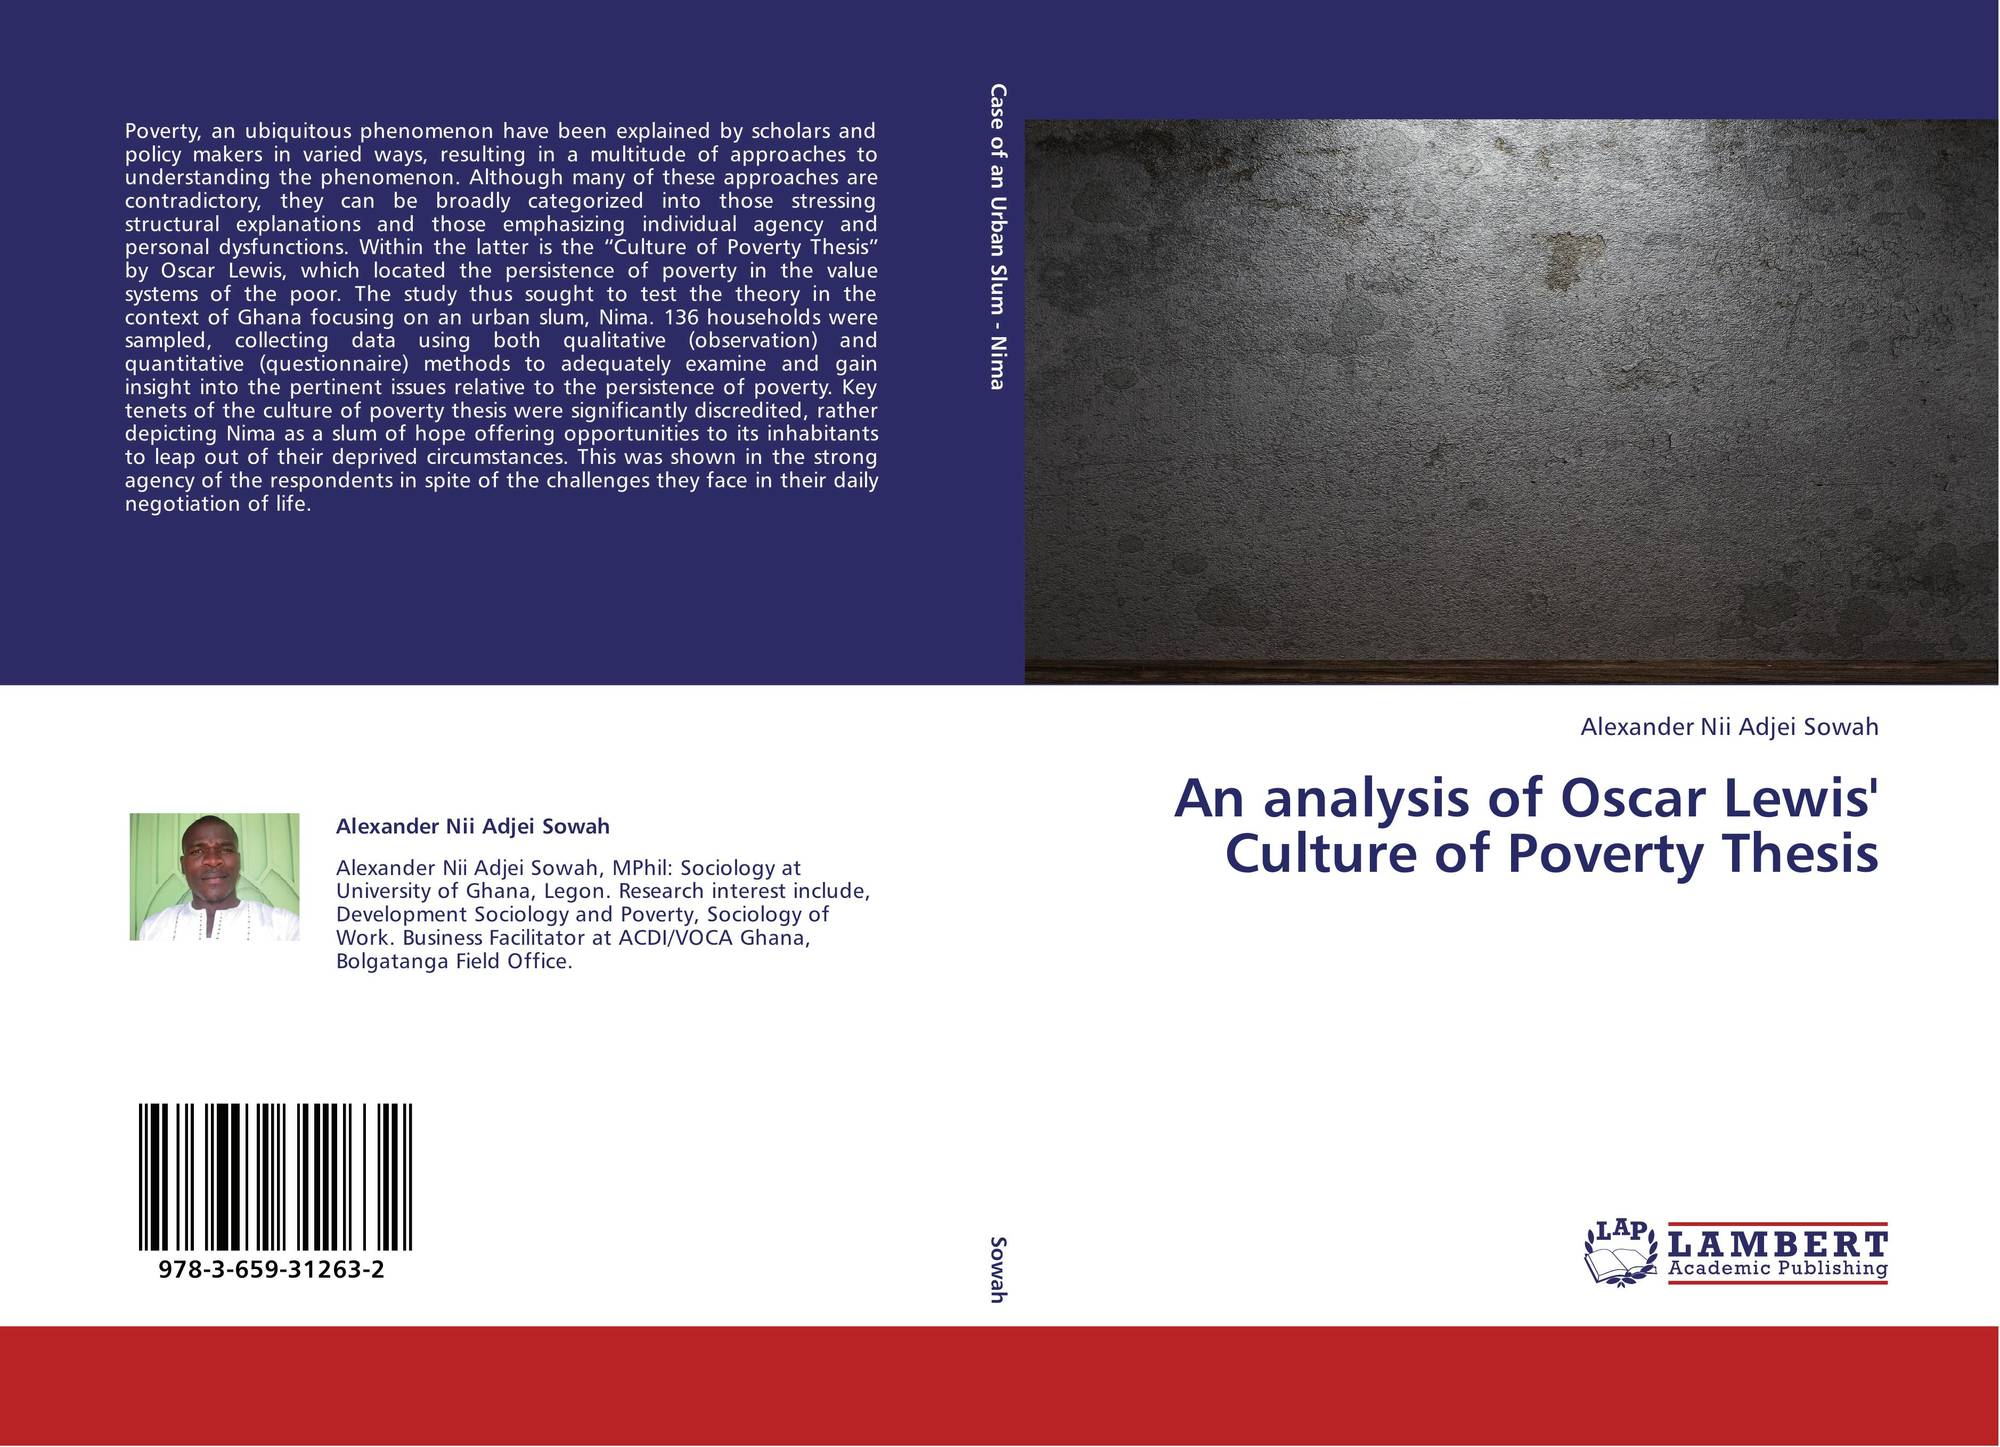 essay on urban poverty in india